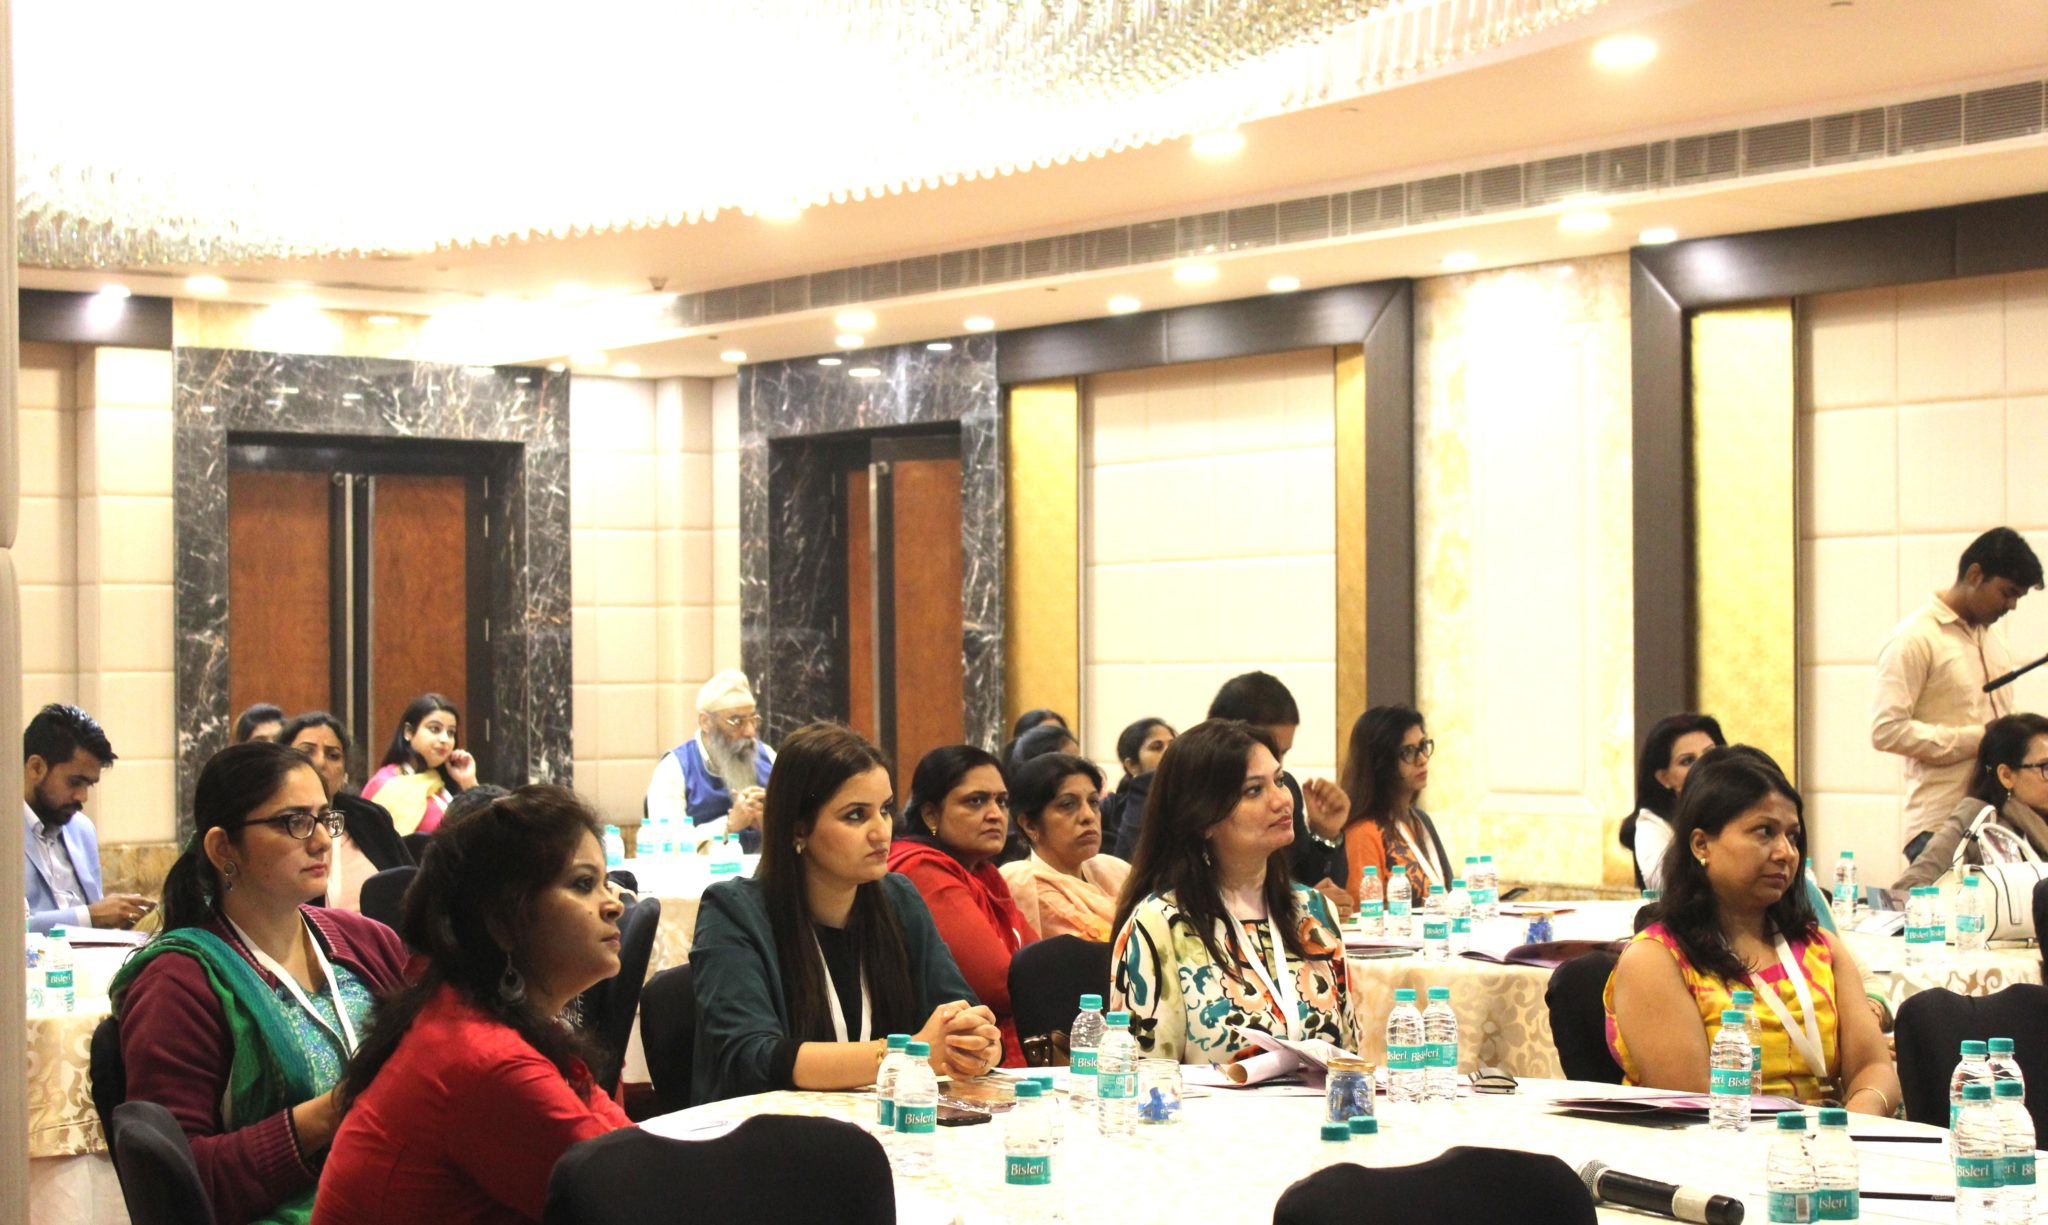 International conference on women health and beauty - International Congress in Delhi on Women's Health, Lifestyle & Beauty